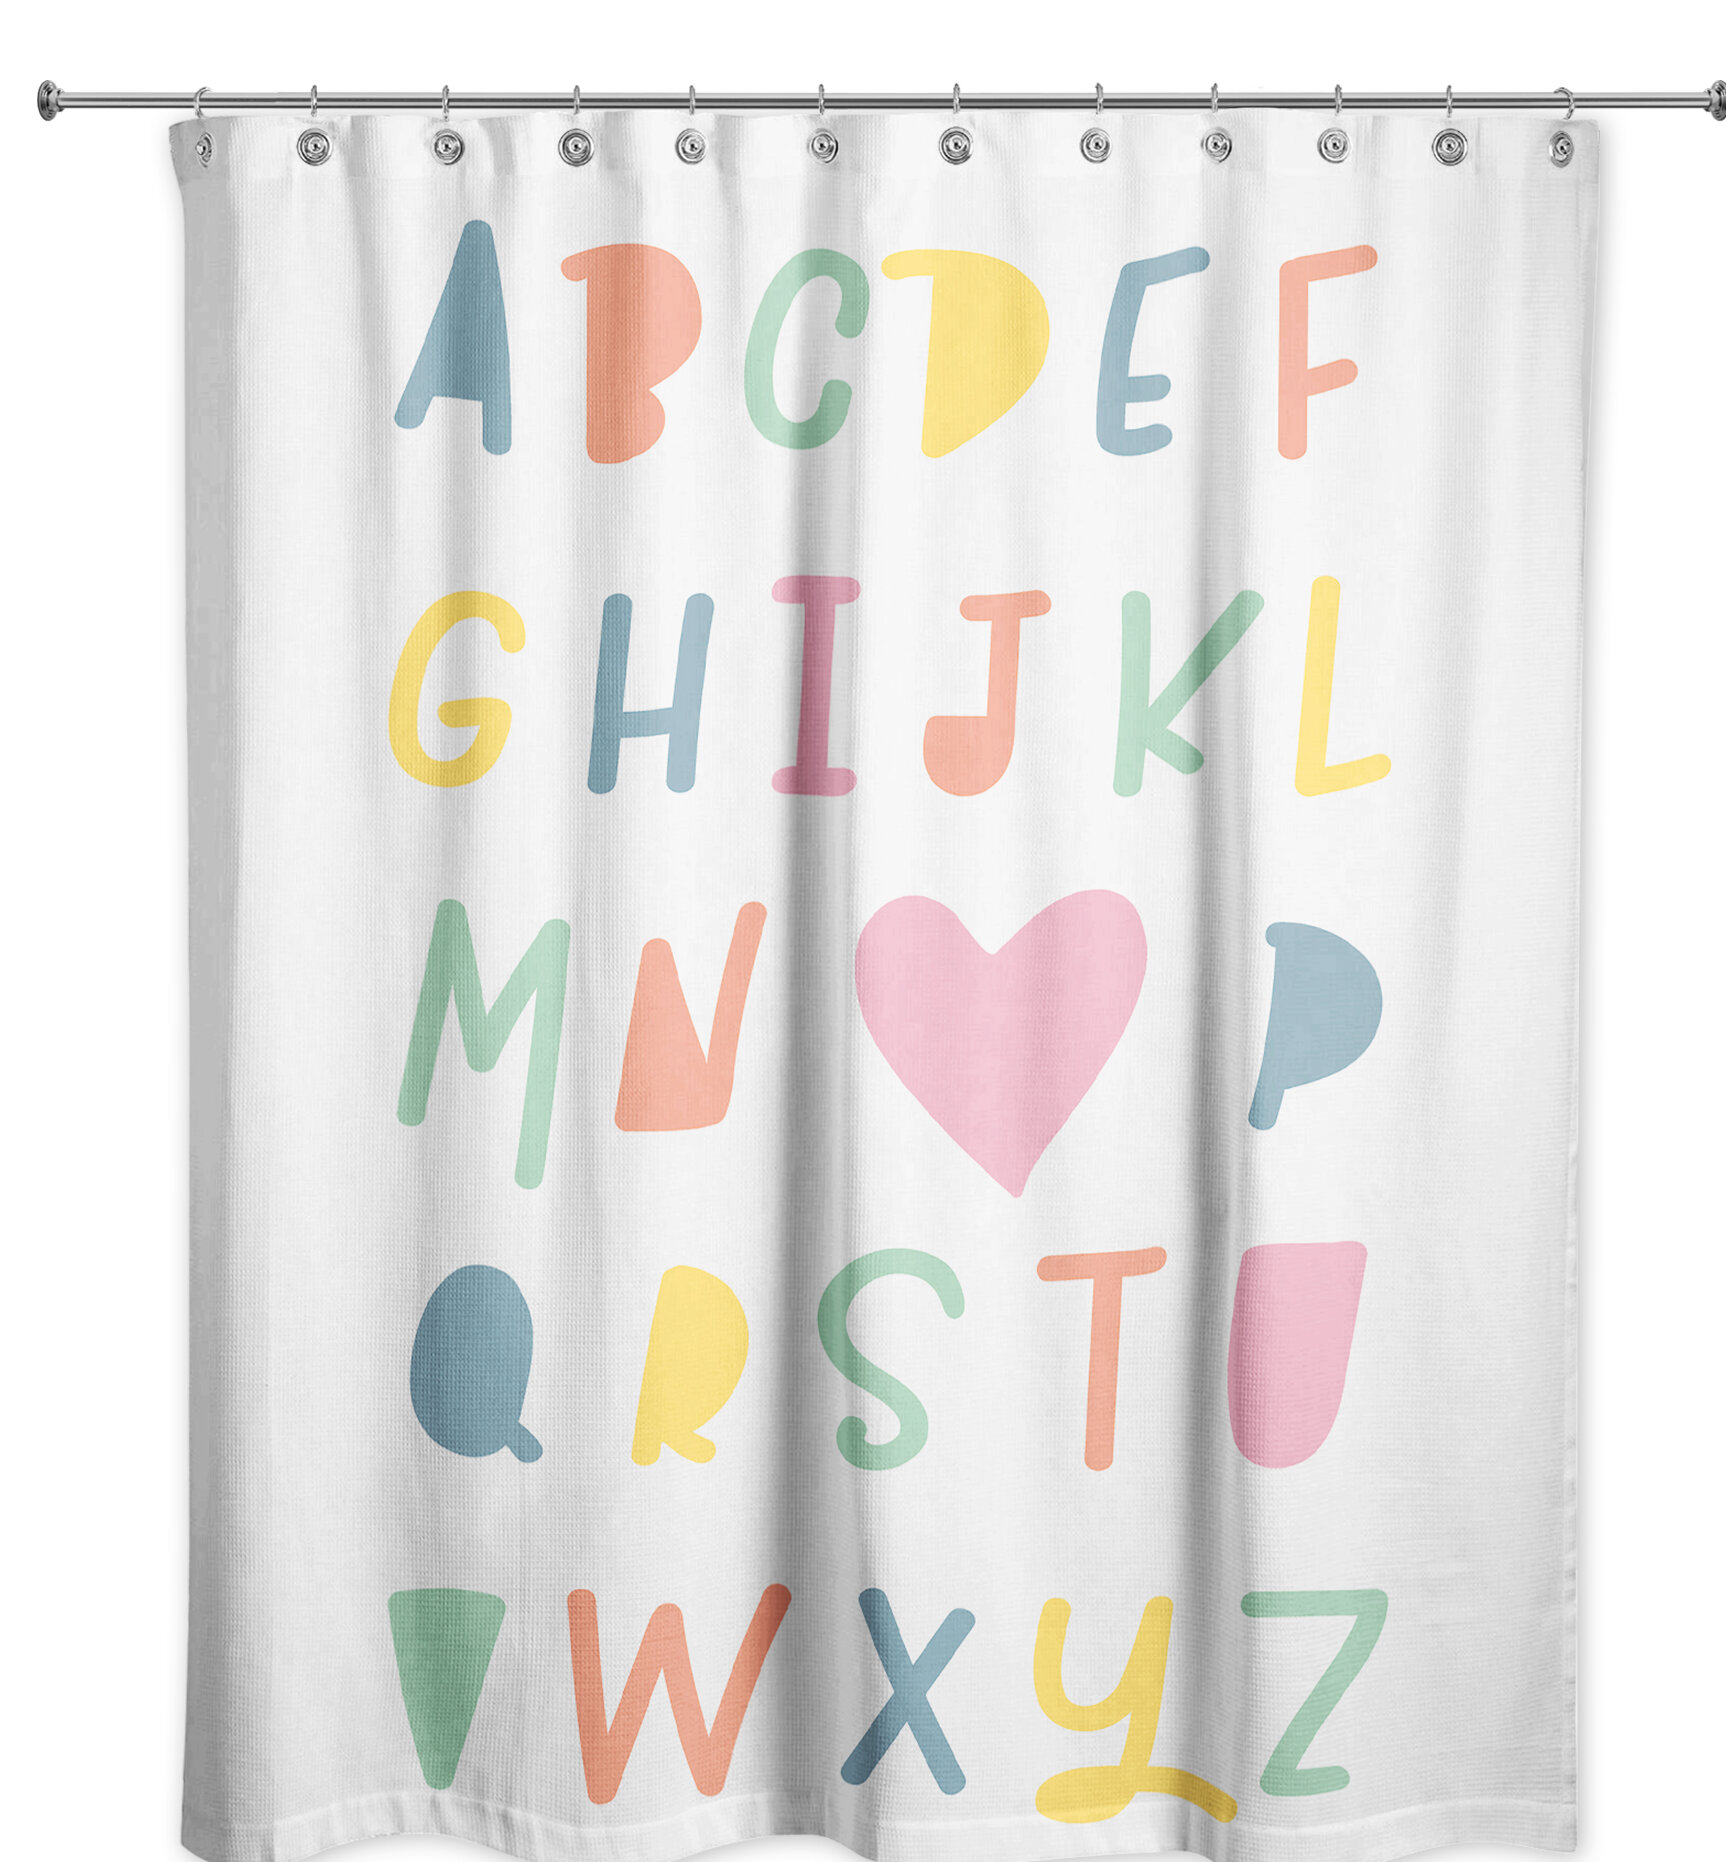 Waterproof Fabric Shower Curtain Set Cartoon Animals Alphabet Letter From A to Z